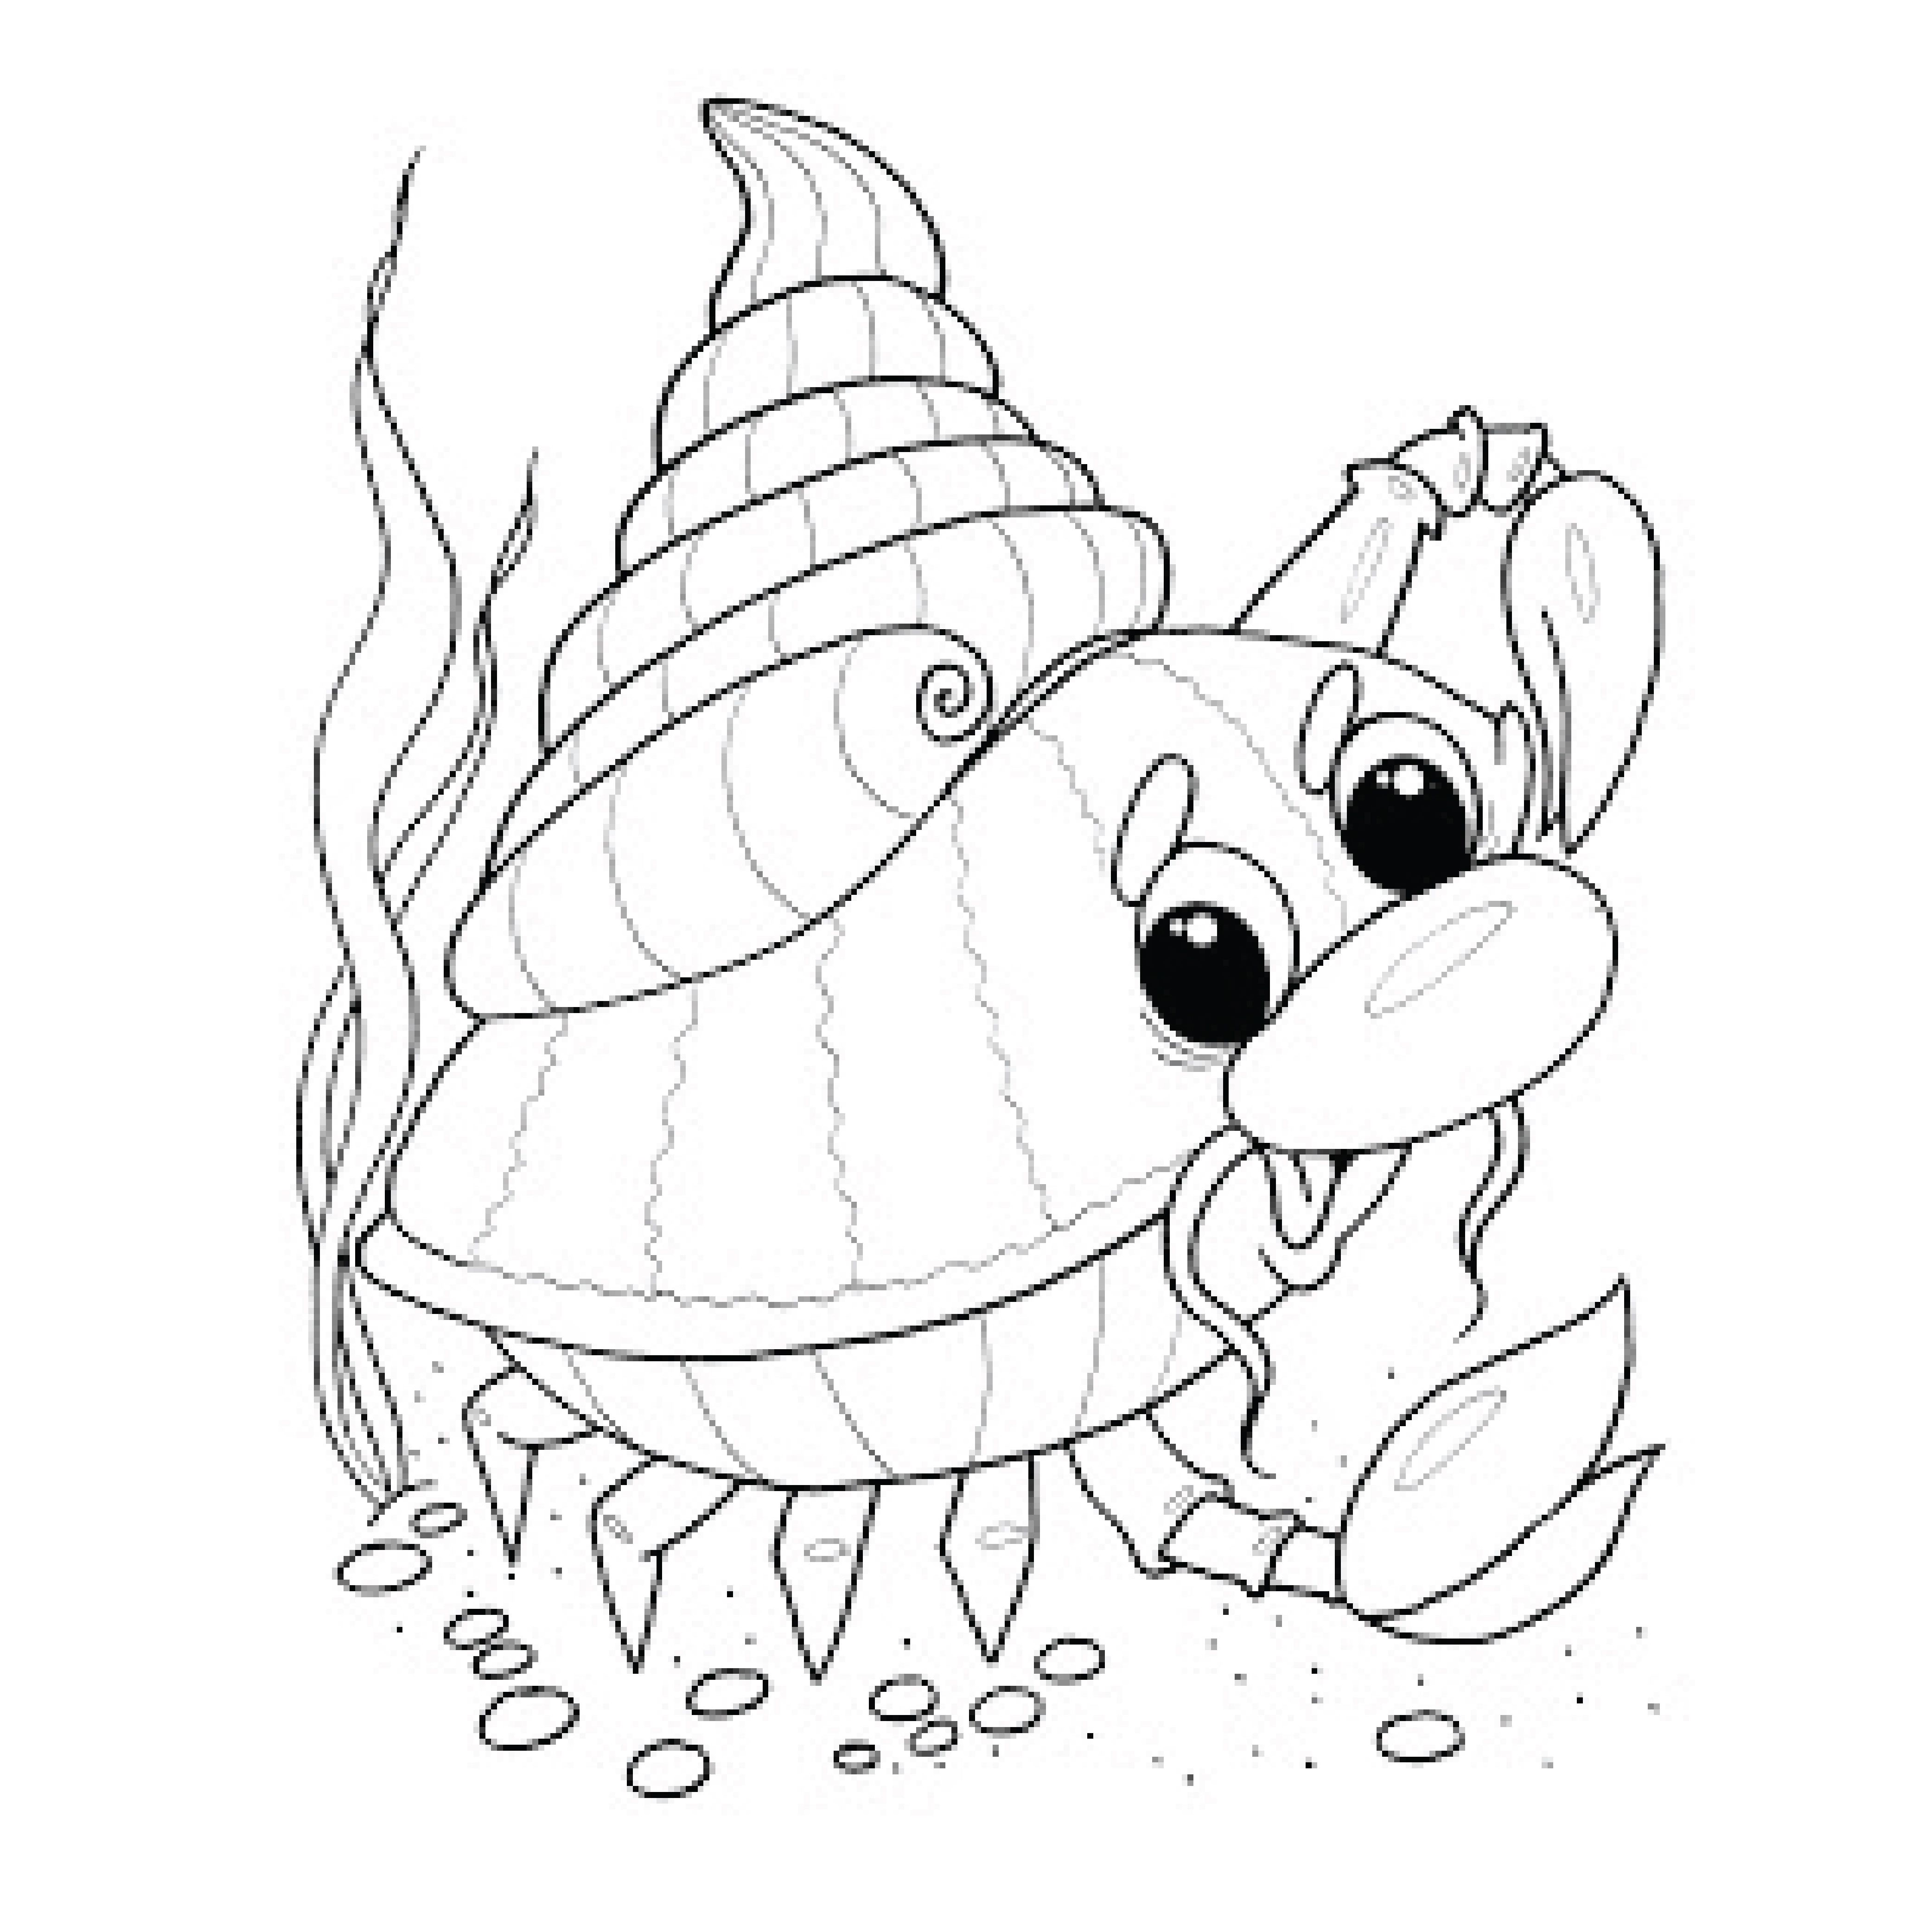 Kishor_artist: I will make black and white coloring page